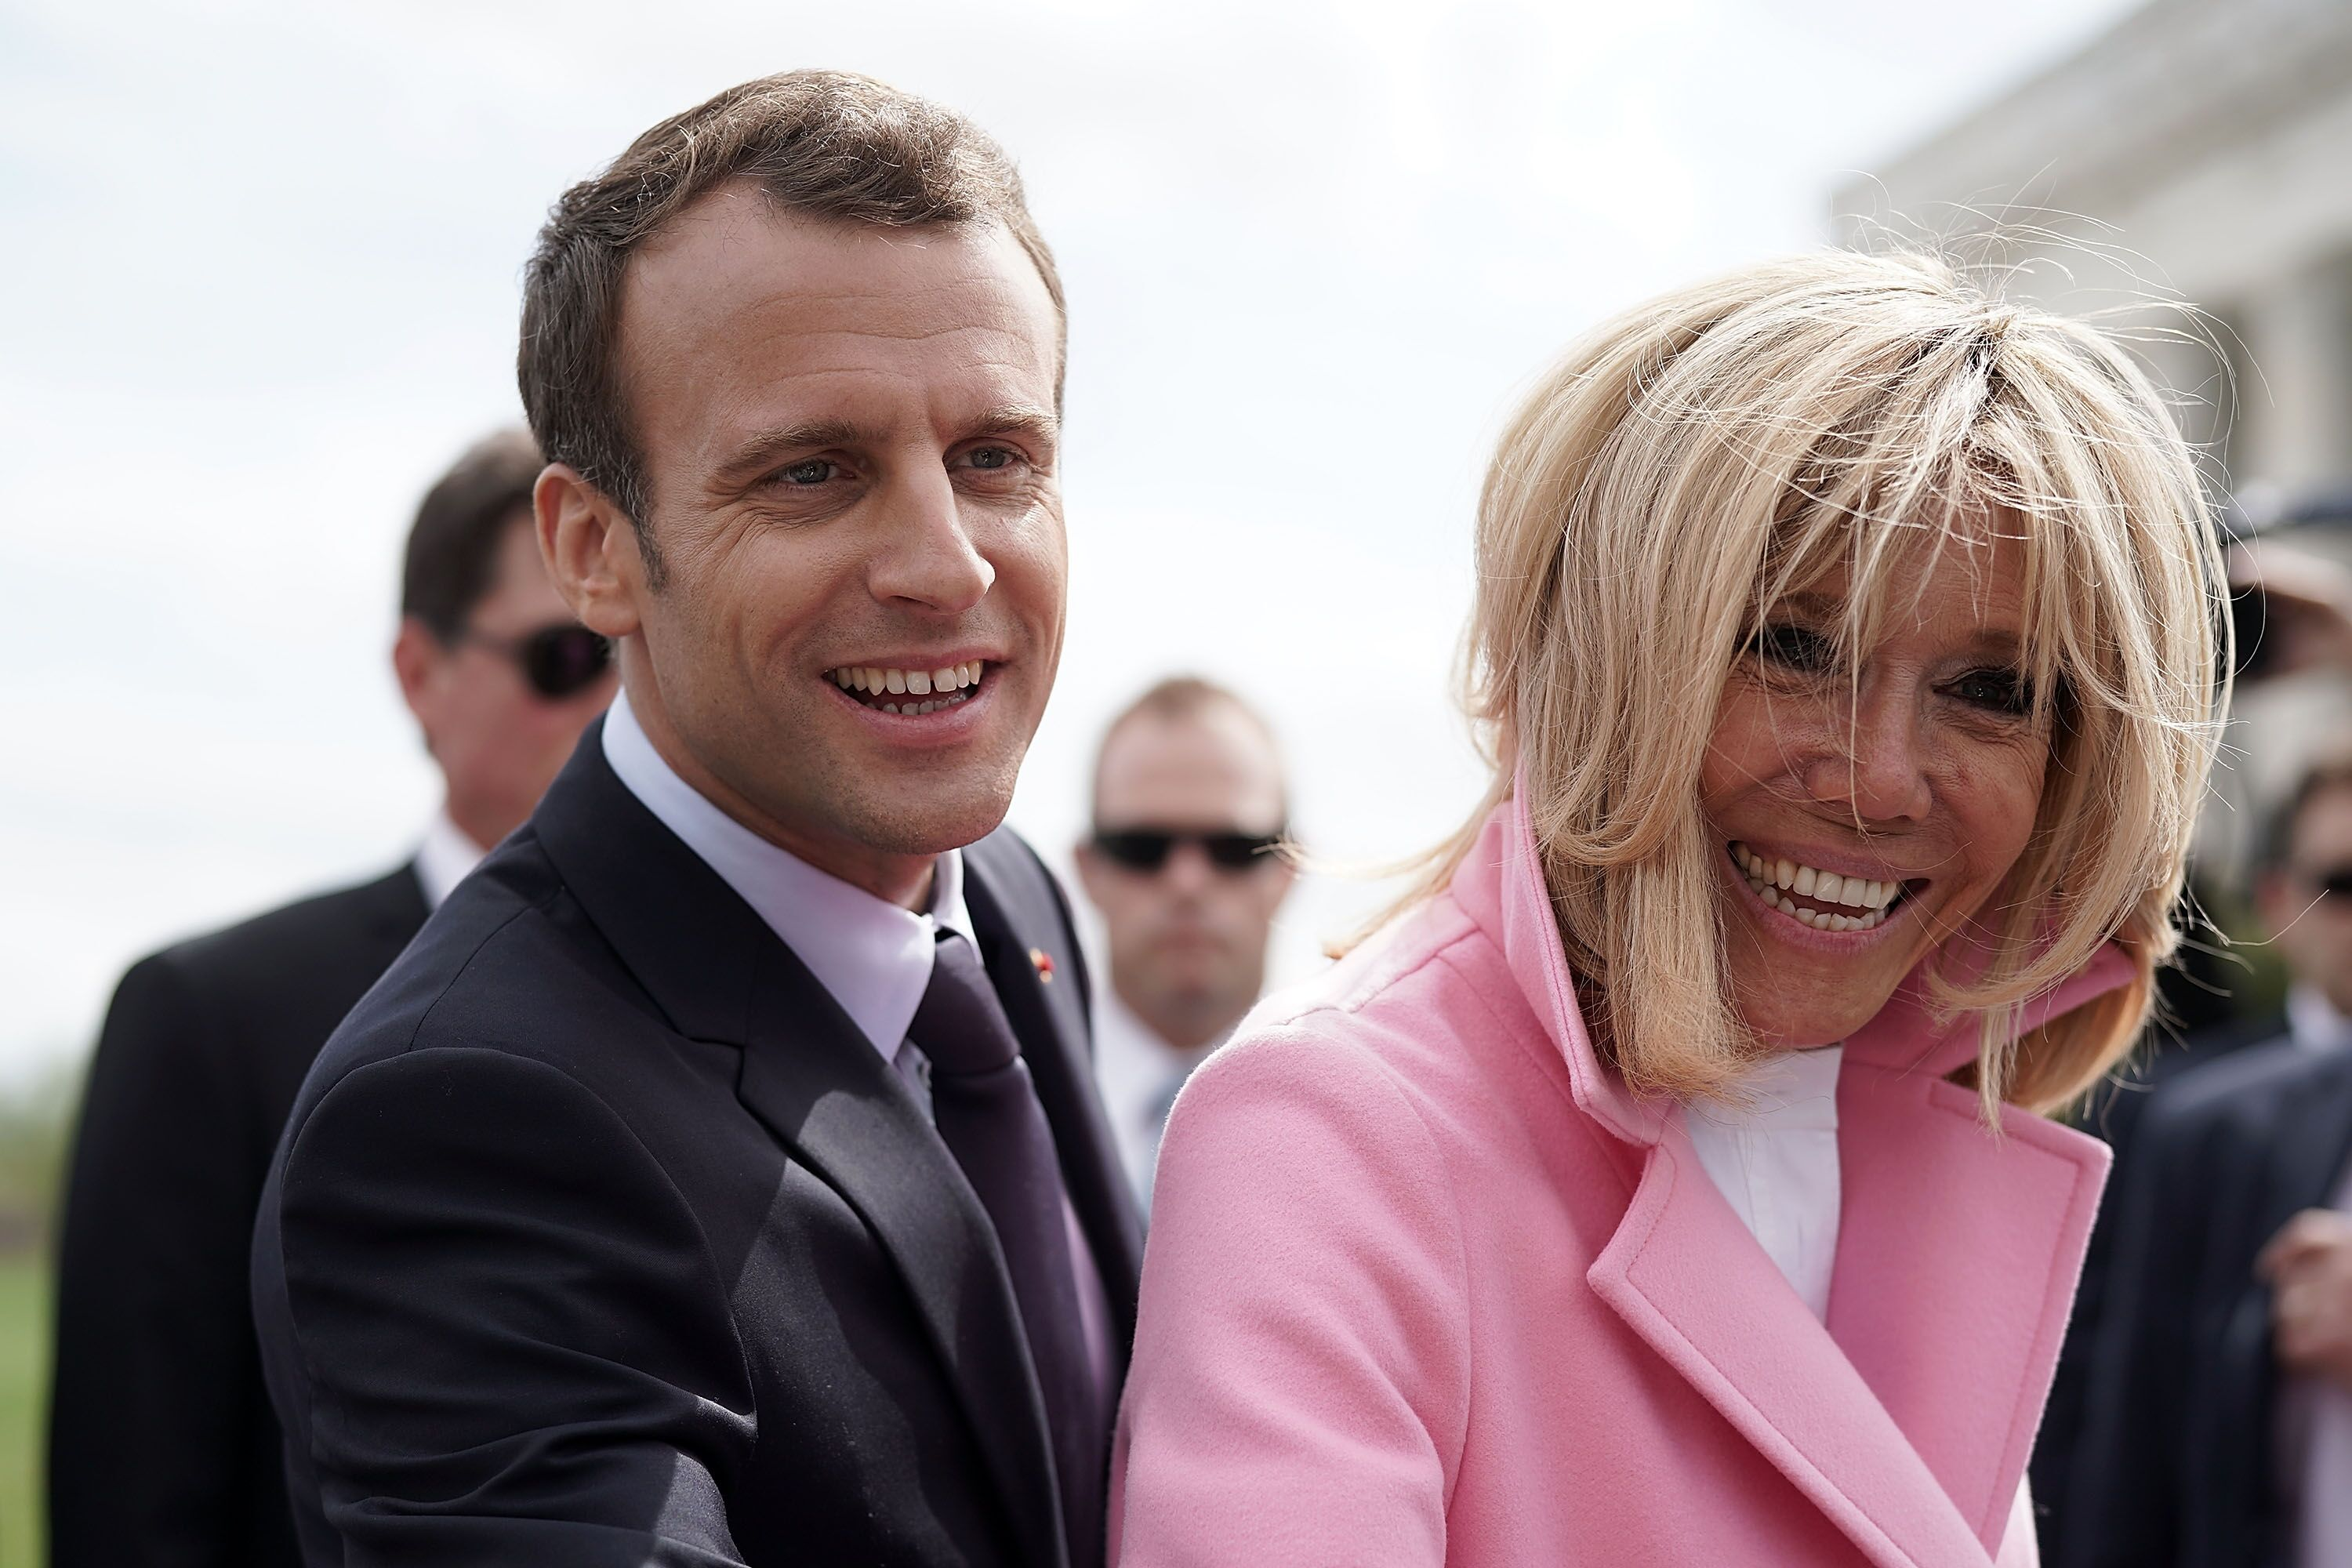 Brigitte et Emmanuel Macron souriants. l Source: Getty Images